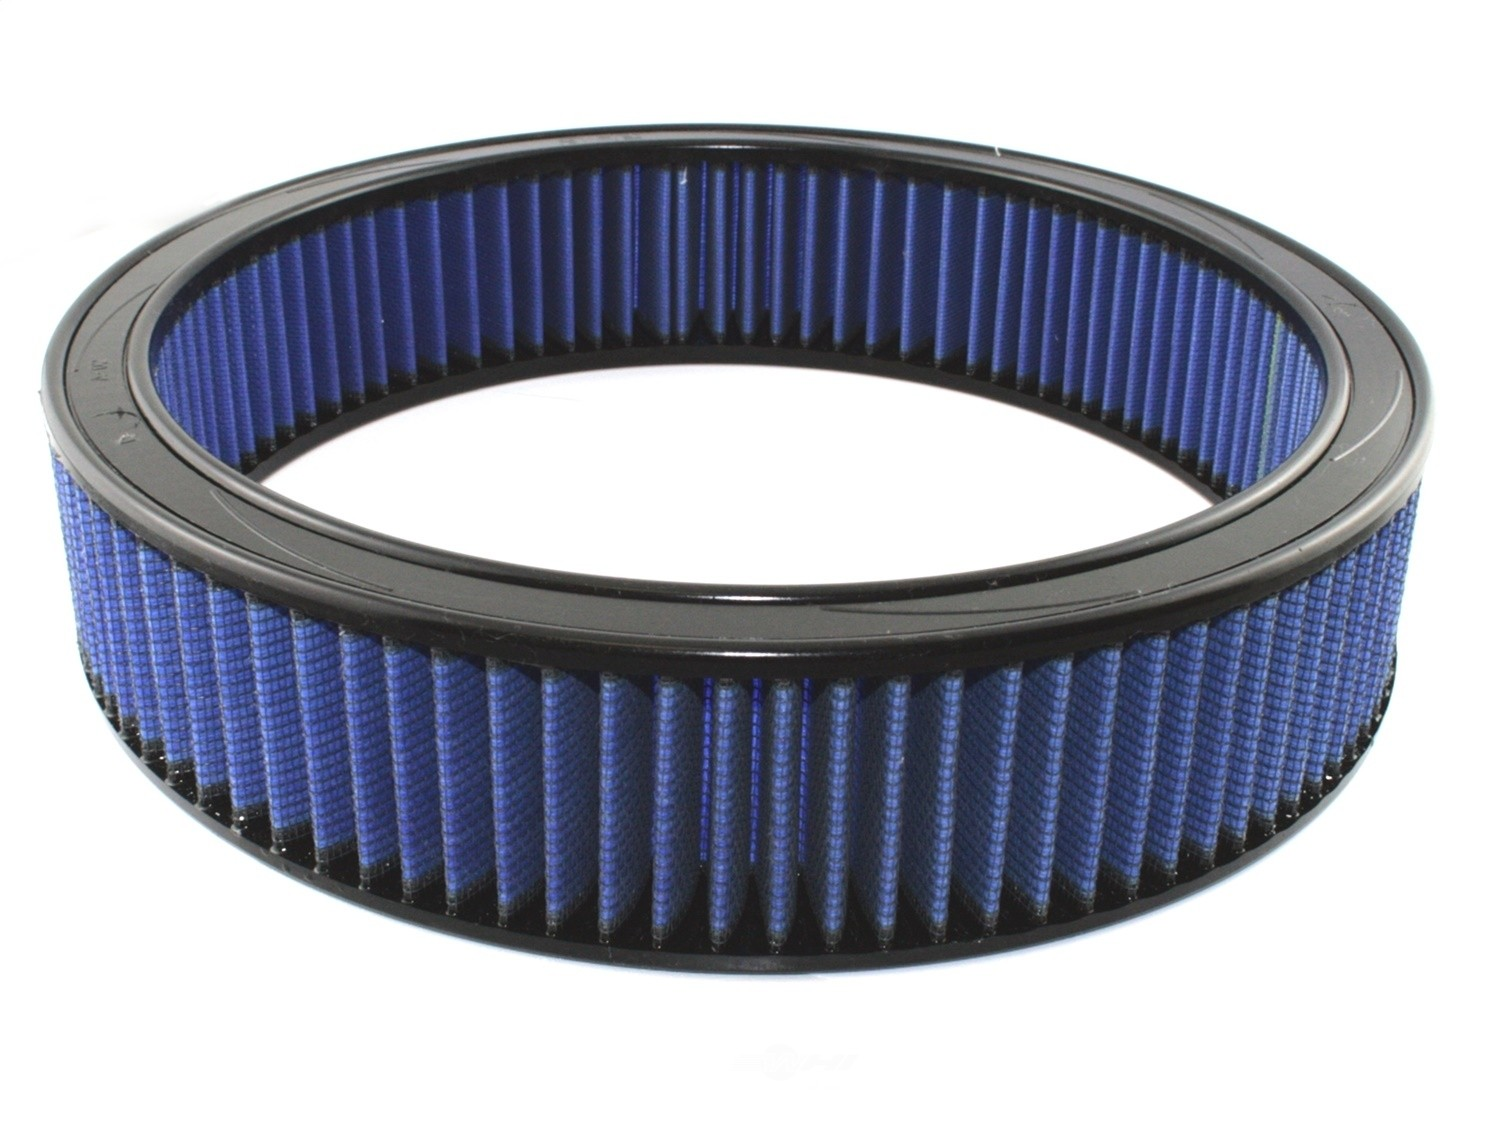 AFE FILTERS - MagnumFlow OE Replacement Pro 5R Air Filter - A5F 10-10009